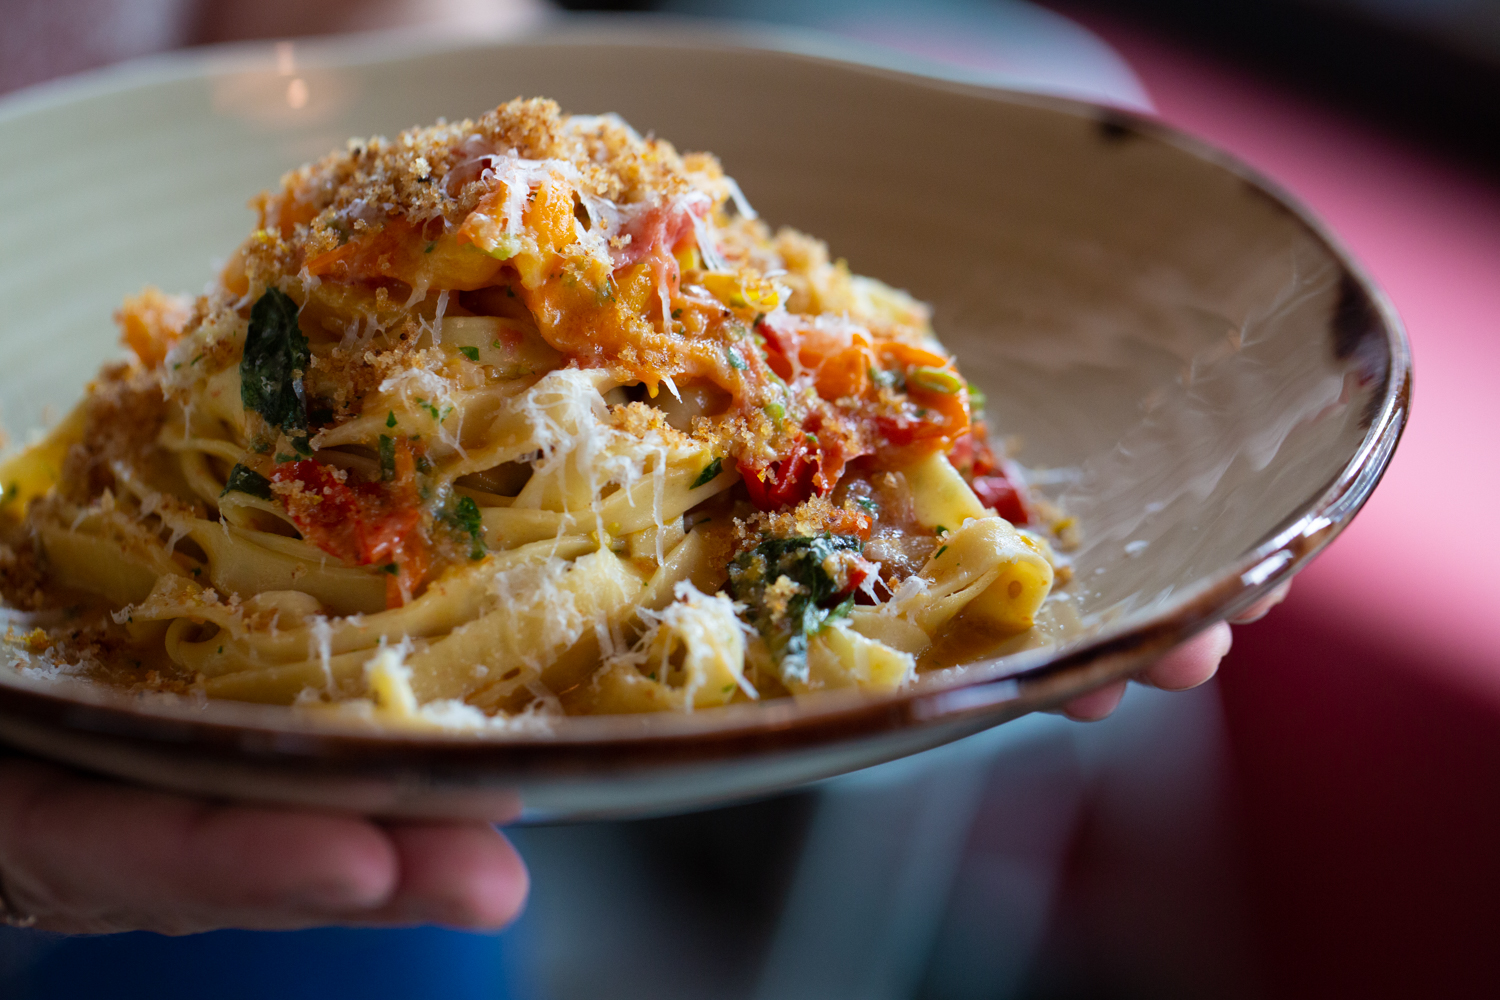 A picture of a Trifecta Tavern server holding a bowl of pasta with cheese and vegetables